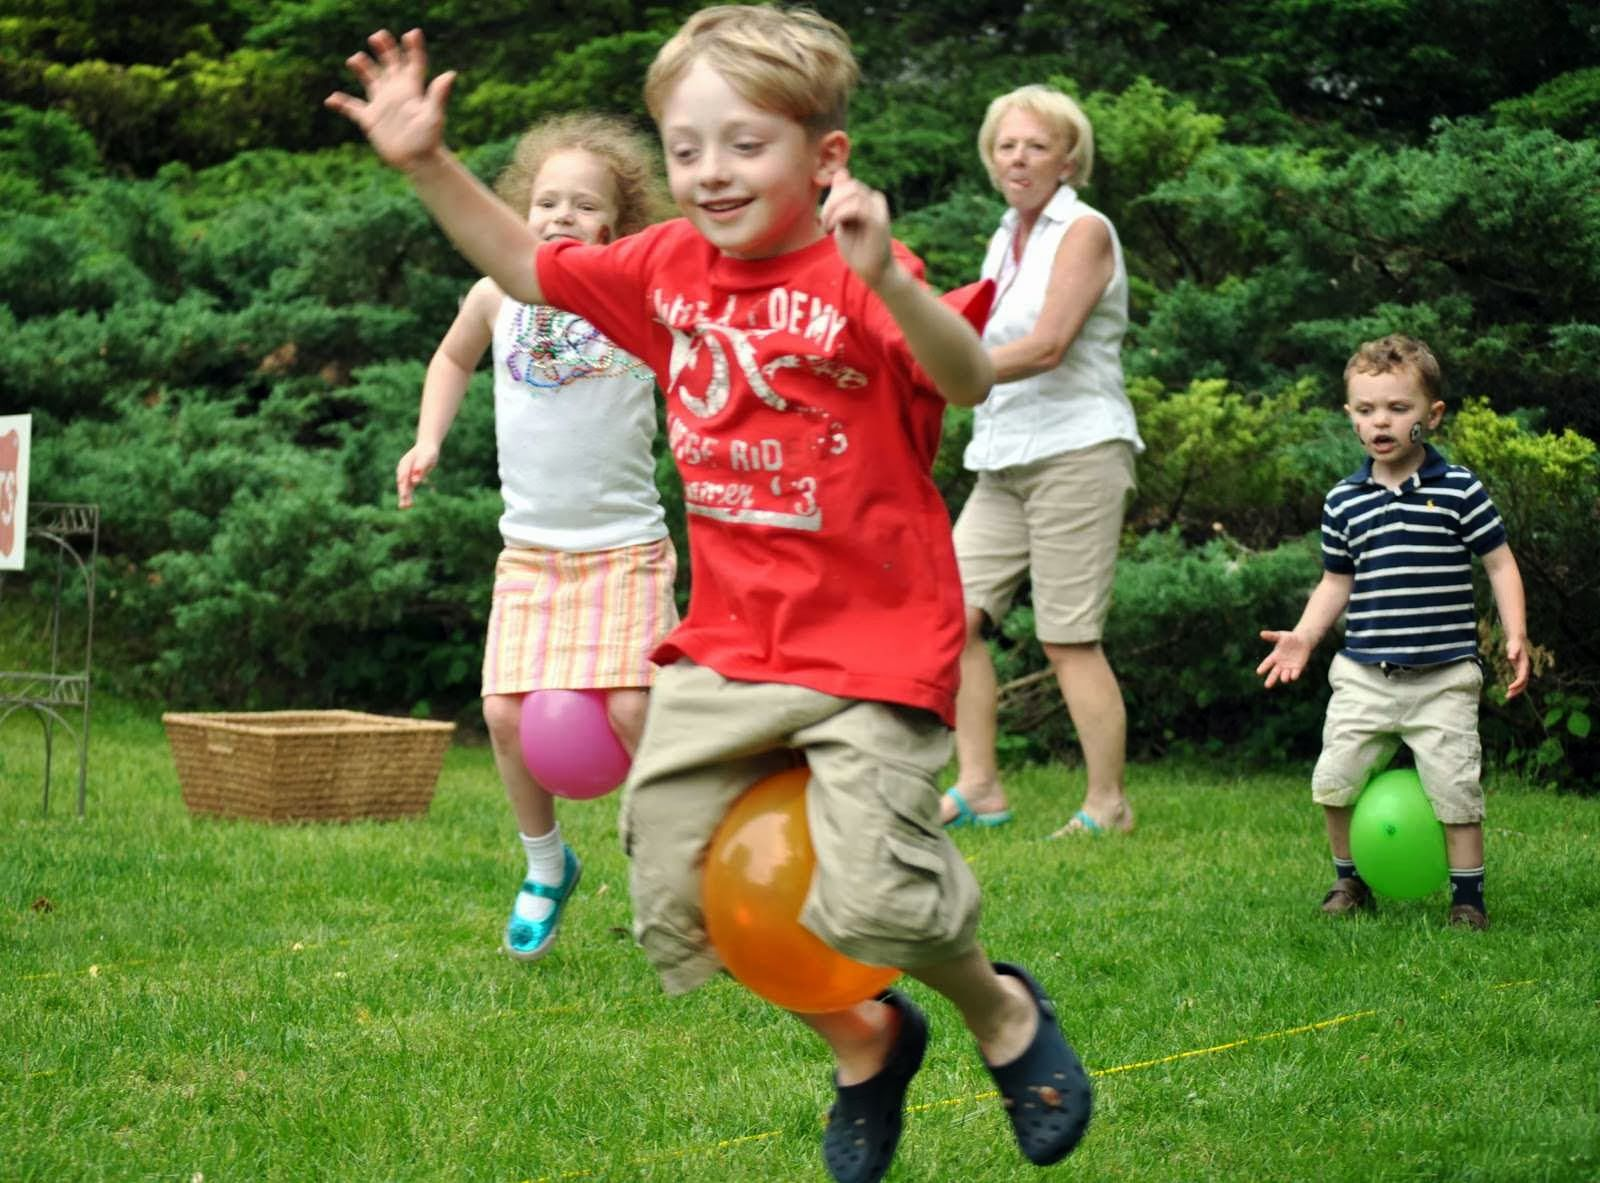 Kangaroo hop relay race vbs game children 39 s ministry for Fun blog ideas